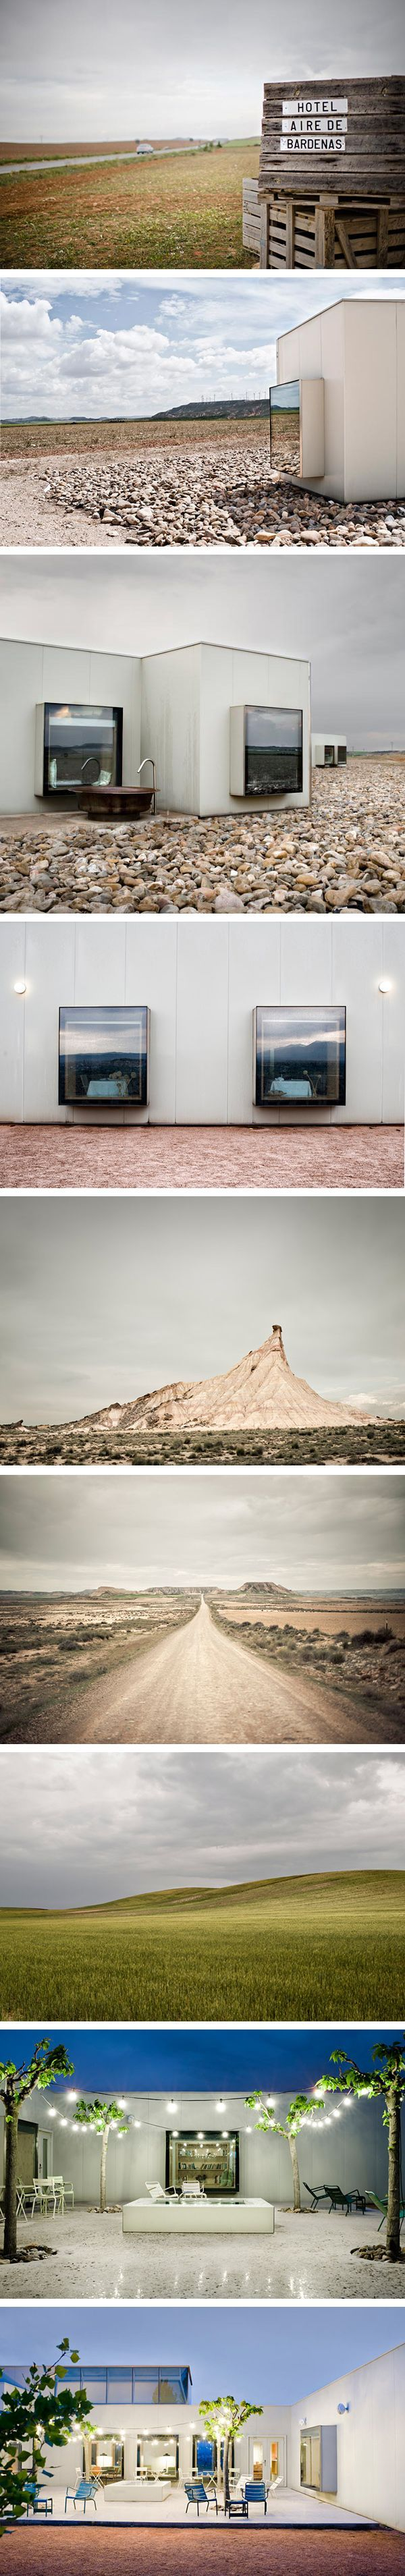 Hotel Aire de Bardenas by the young architects Emiliano López and Mónica Rivera. Fotos by Victor Lax